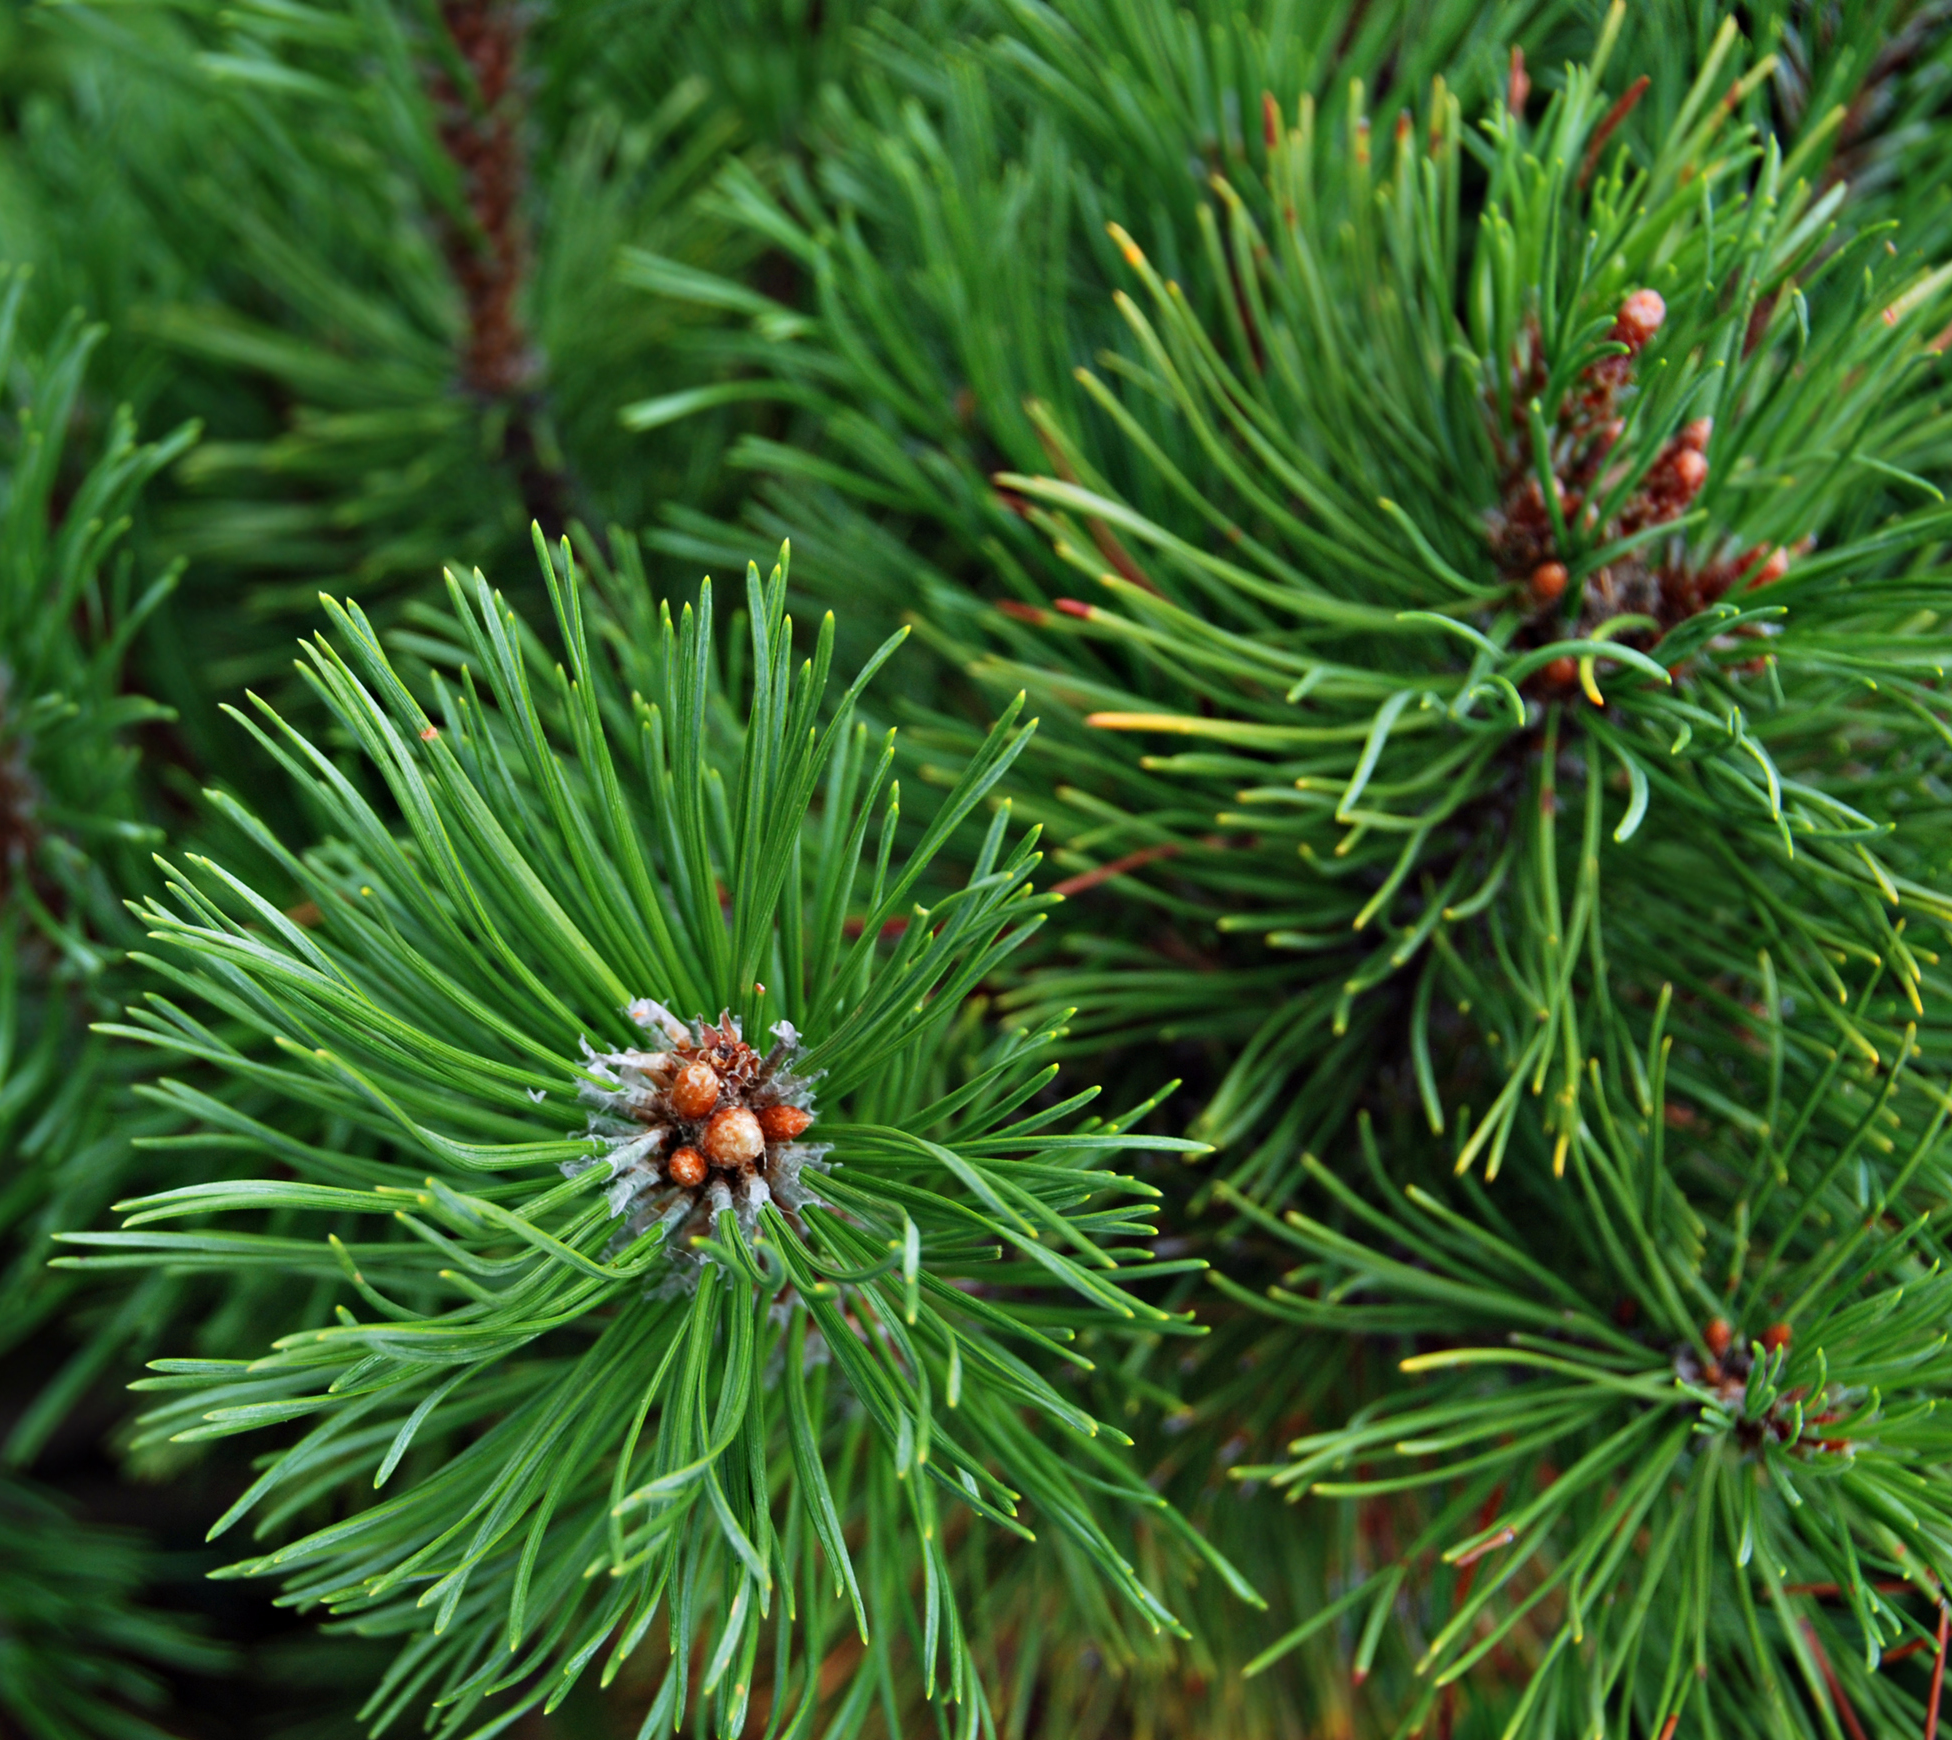 Siberian Fir Co2 Extract Extracted From The Needles Of The